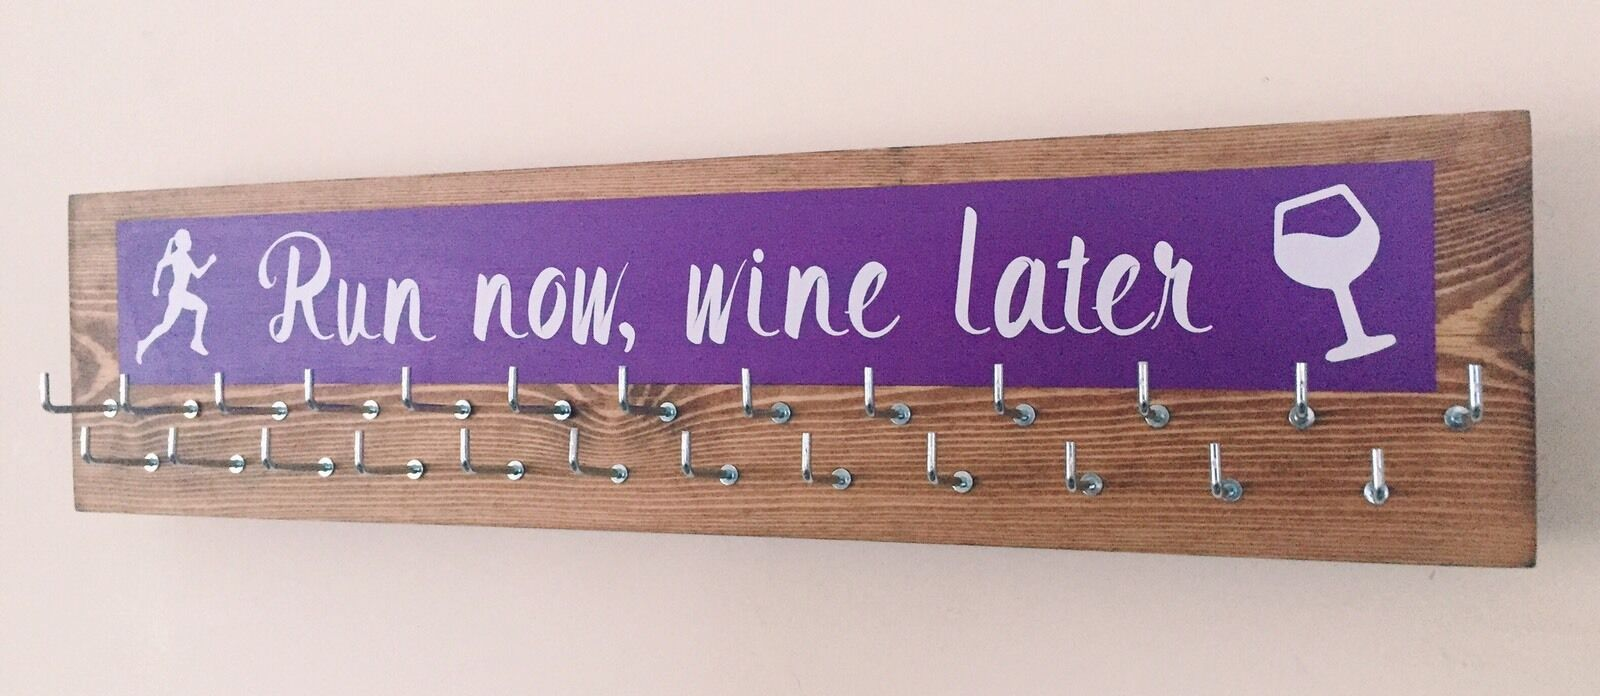 Run Now Wine Later  - Runner Sports Medal Hanger Holder Display